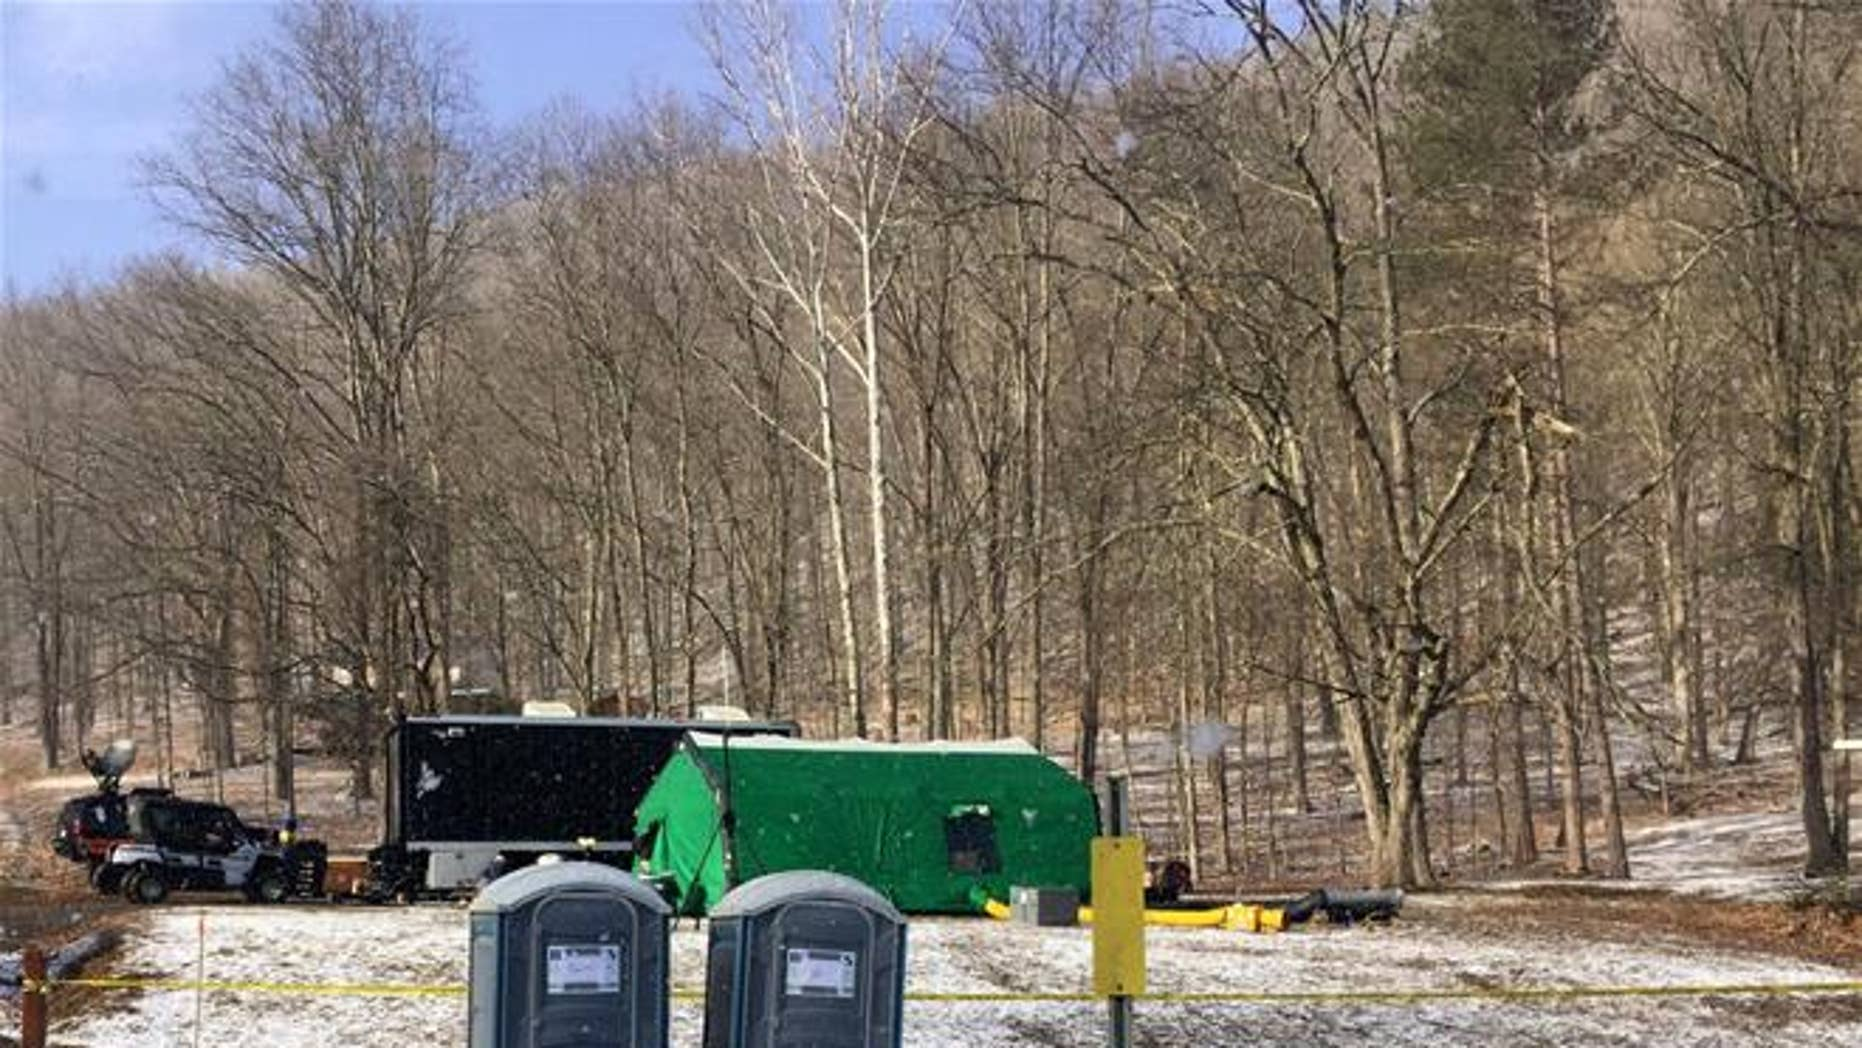 FBI agents and representatives of the Pennsylvania Department of Conservation and Natural Resources set up a base off Route 555 in Benezette Township, Elk County, Pa., at a site where treasure hunters say Civil War-era gold is buried.